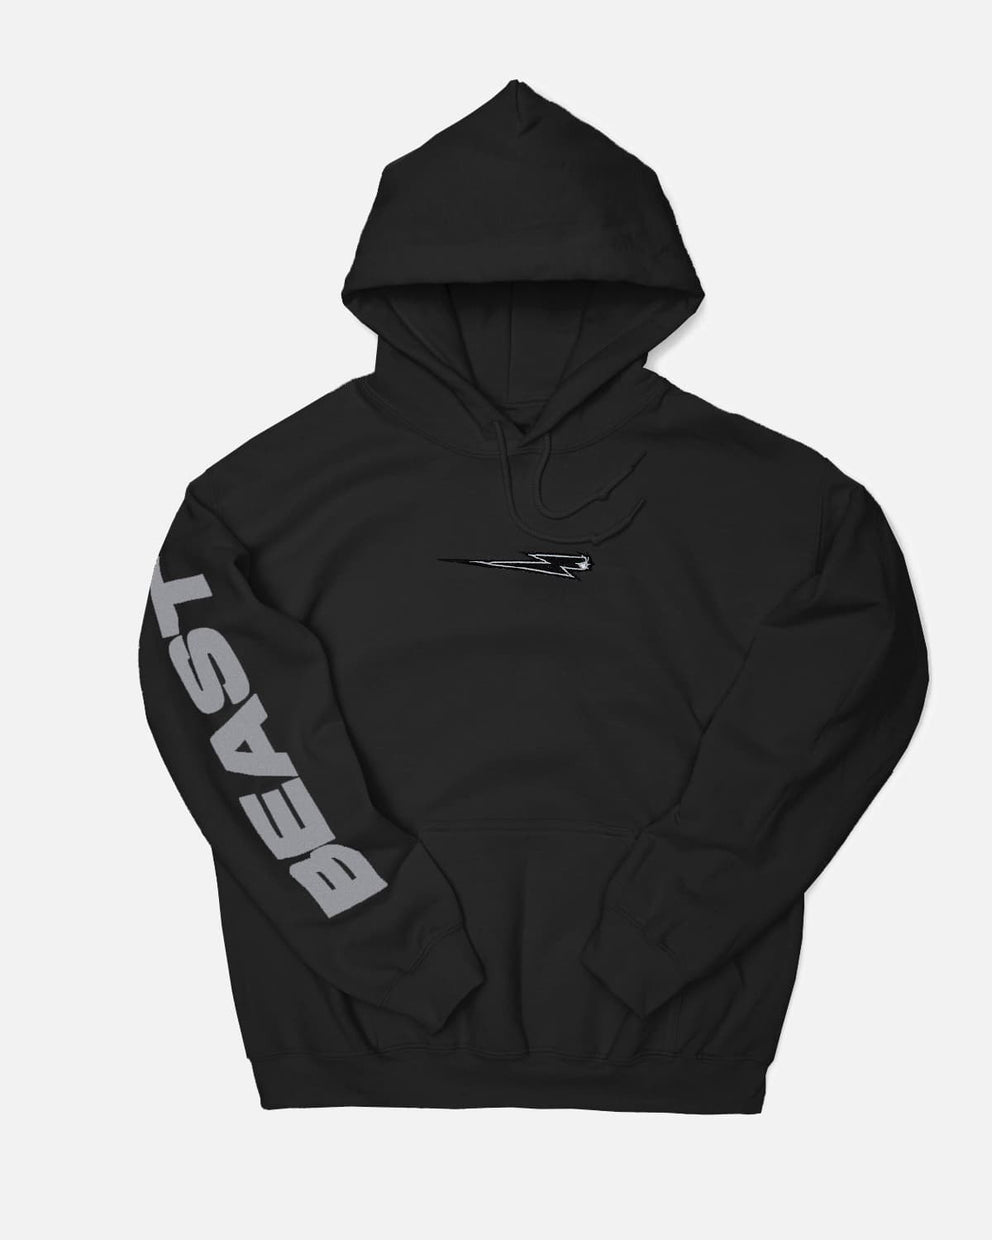 'Beast Bolt' Embroidered Reflective Pull Over Hoodie - Black